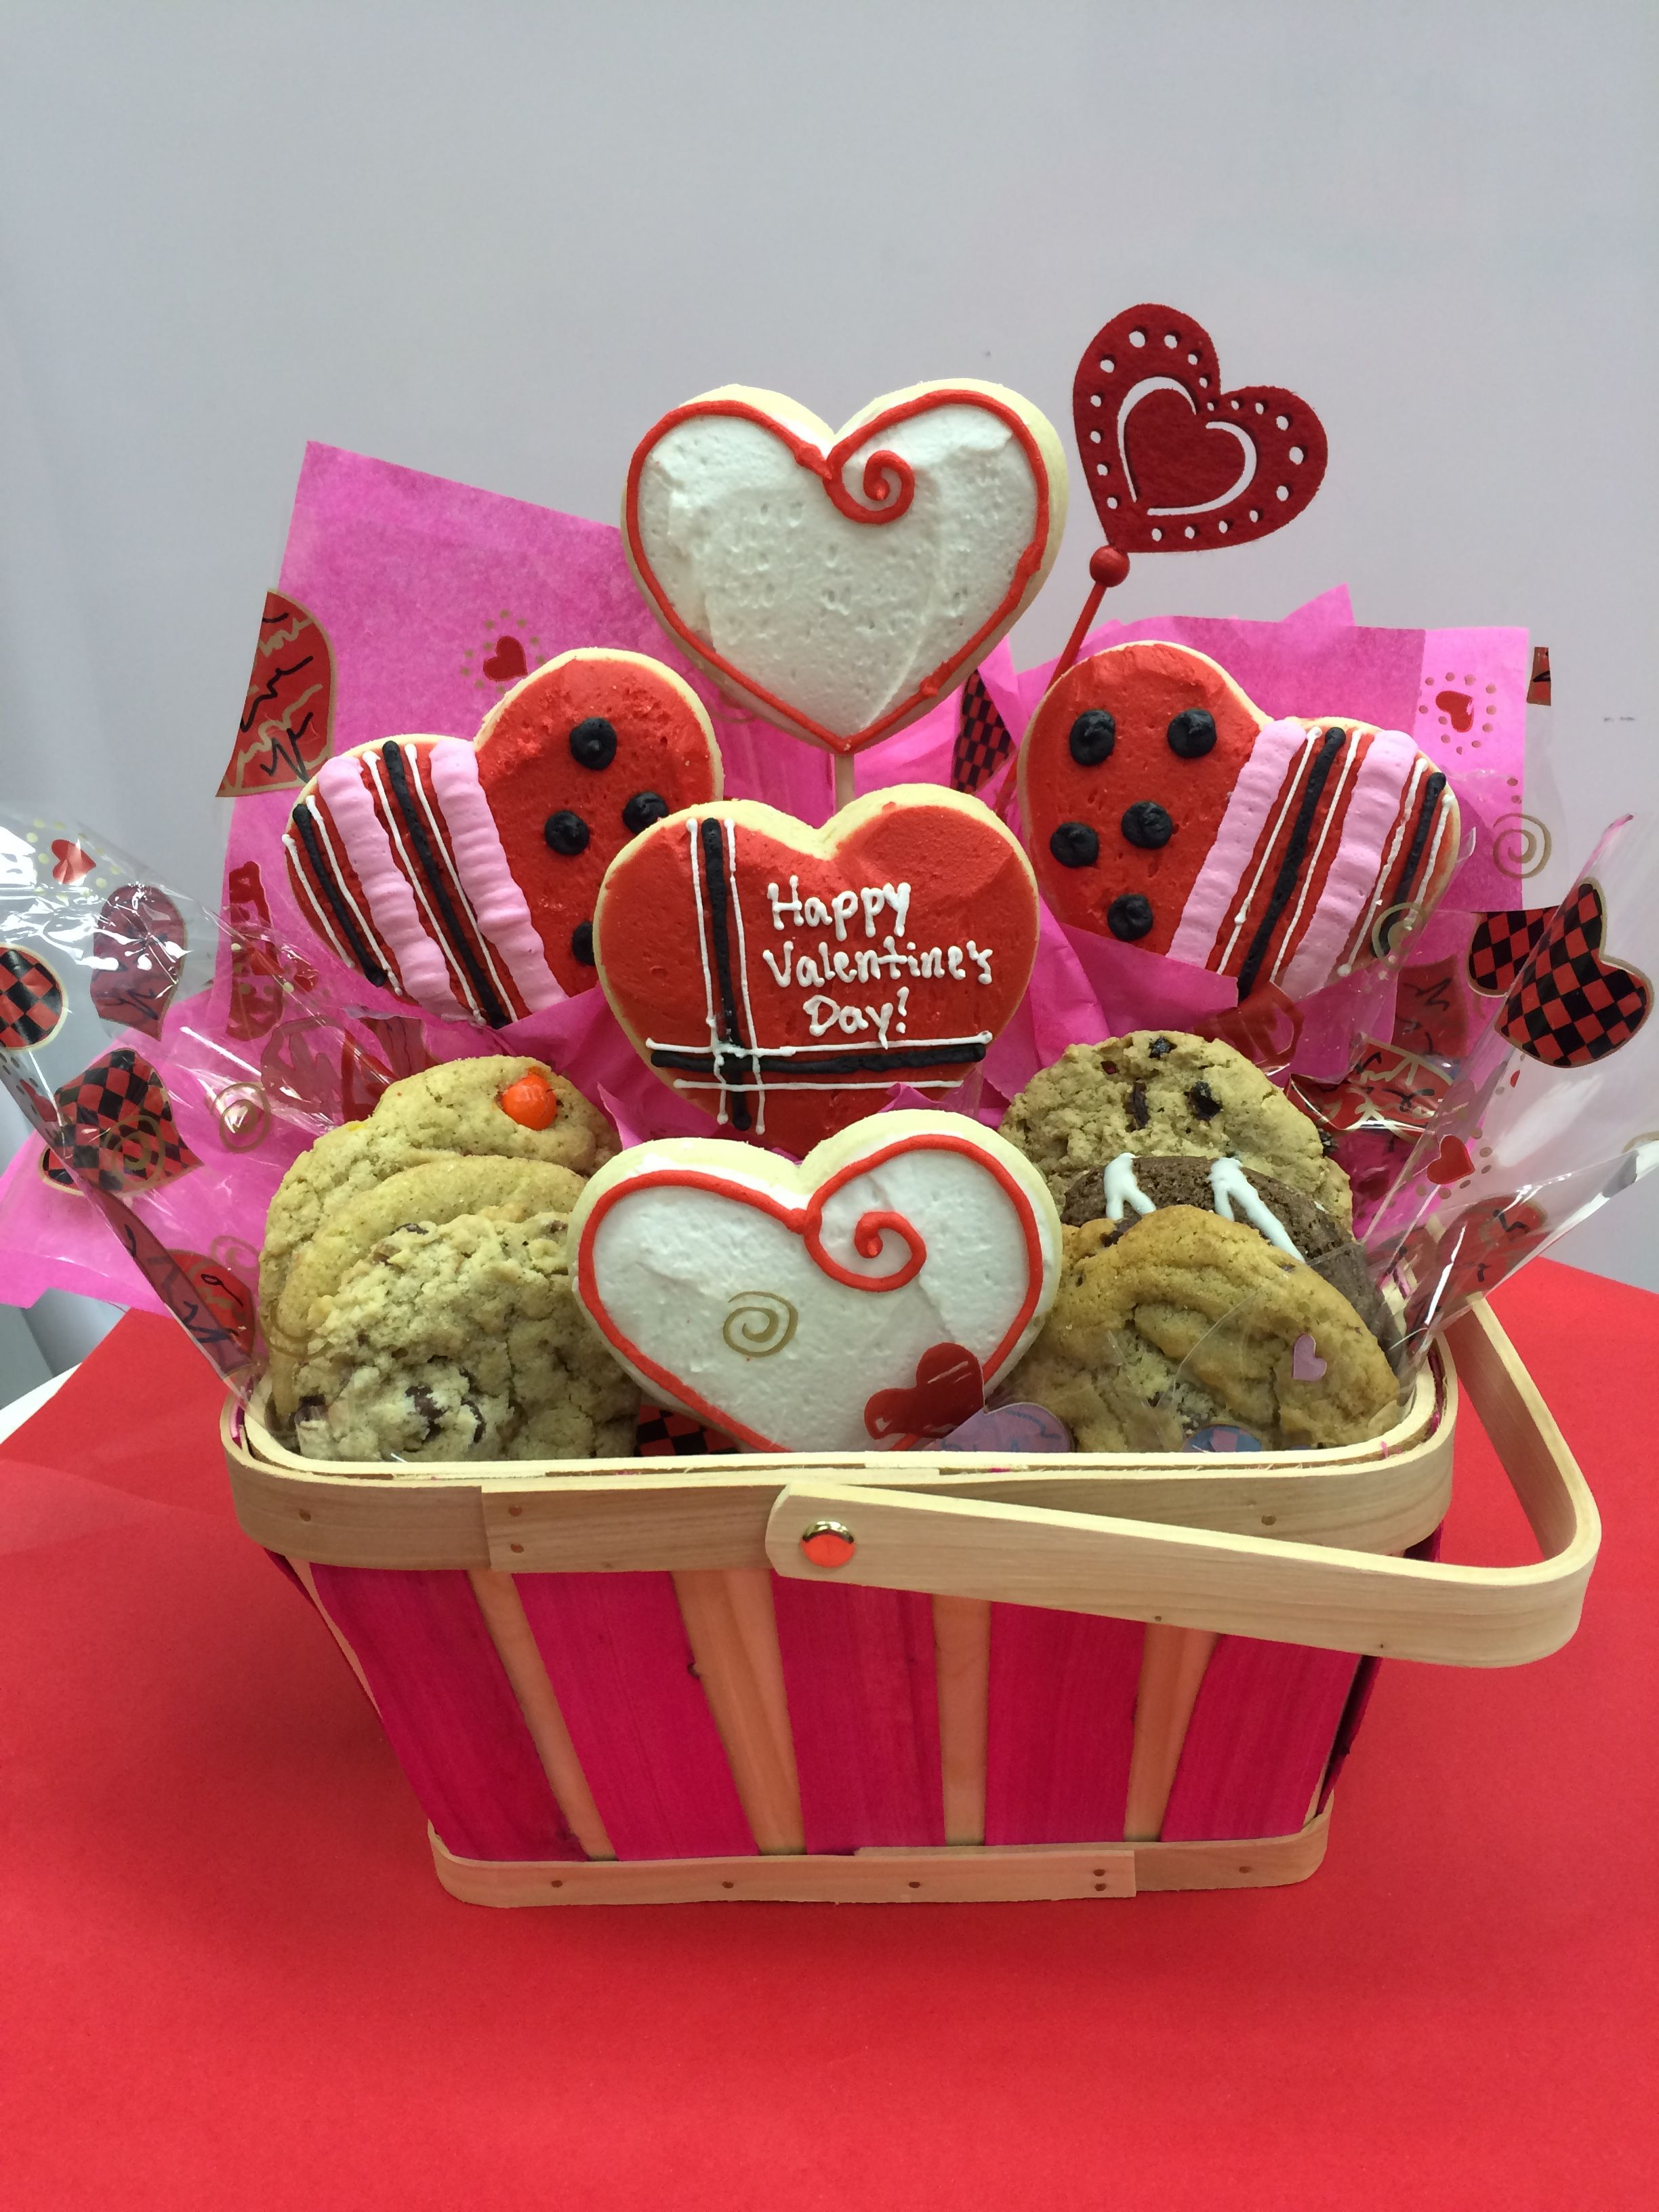 Delicious assortment of sugar cookies and gourmet cookies